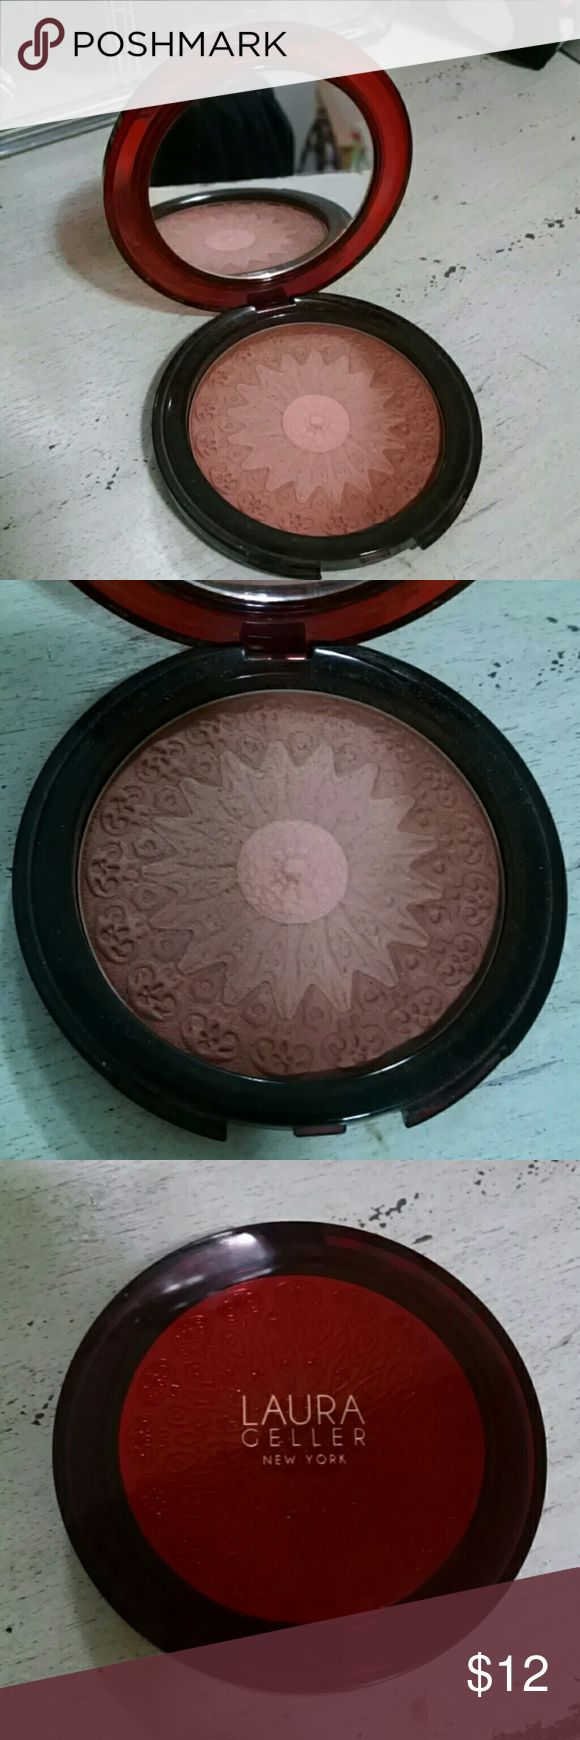 Laura Geller Moroccan Bronzer From the Laura Geller Mediterranean Set, this is a beautiful baked bronzer. It has a shimmer so it can also be used as a highlighter. Mirror compact. Barely used, I'm stuck on my Mac bronzers lol. No box.100% AUTHENTIC!!! Bundle and save on shipping costs!!! Wet N Wild Makeup Bronzer